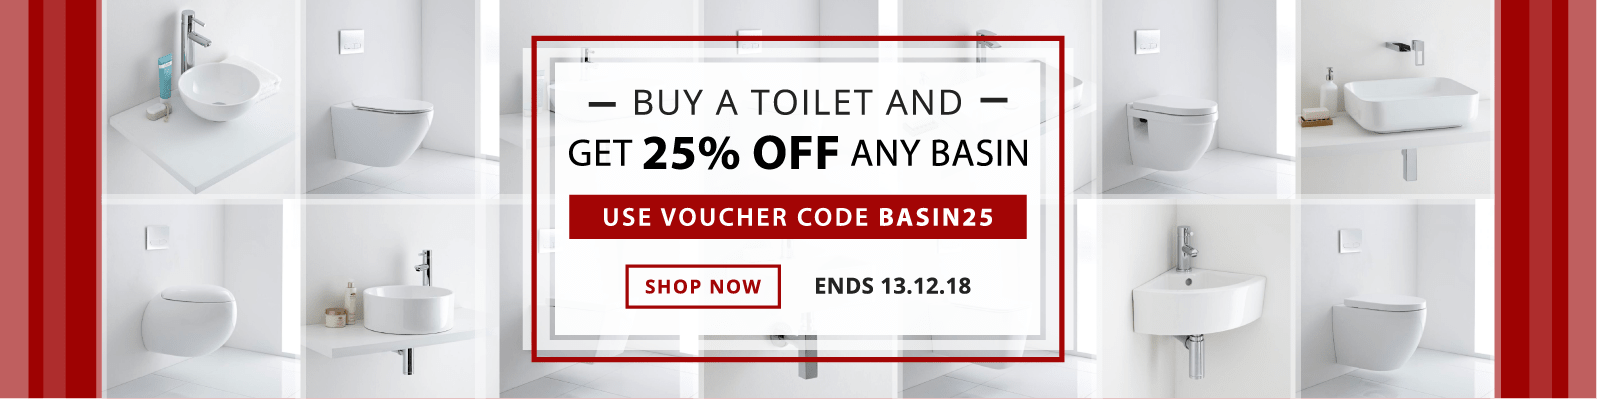 Buy a Toilet and Get 25% off a Basin With Code BASIN25 Shop Now Ends 13.12.18